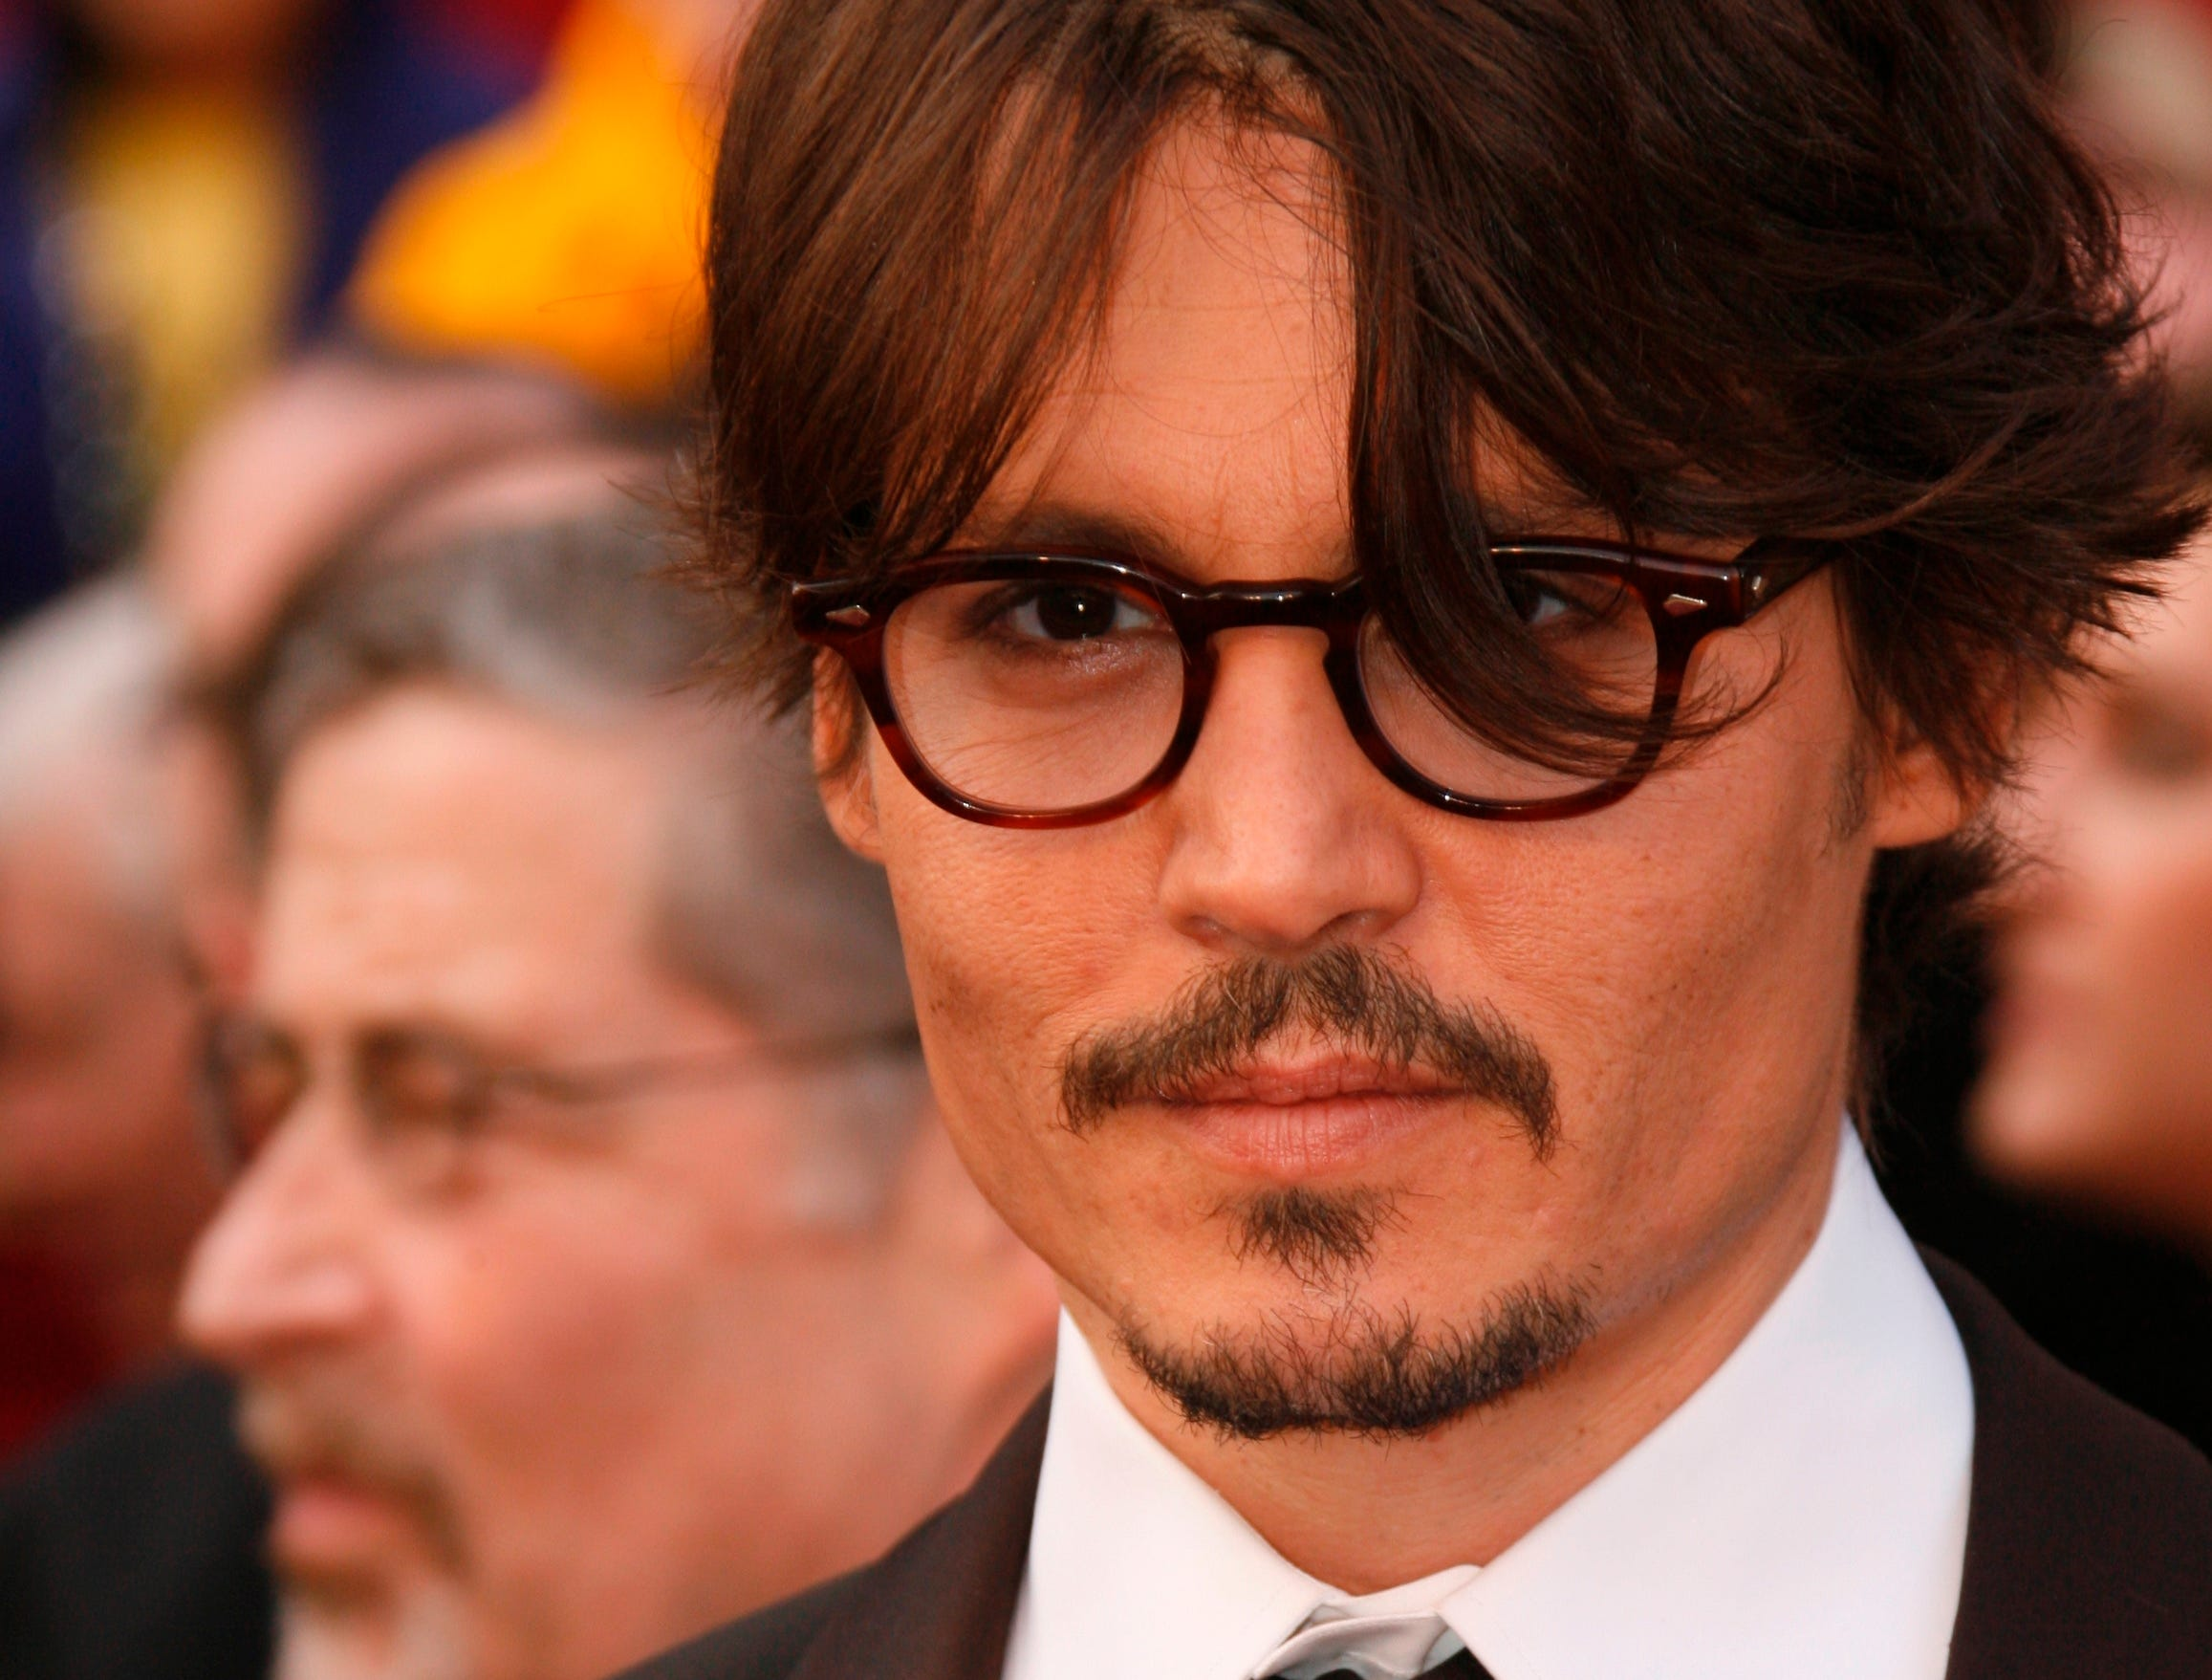 2/24/08 4:53:15 PM -- Los Angeles, CA, U.S.A -- Johnny Depp arrives at the 80th annual Academy Awards at the Kodak Theater.  Photo by Dan MacMedan, USA TODAY contract photographer   ORG XMIT: DM 33534 OSCARS 2/20/2008  (Via MerlinFTP Drop)